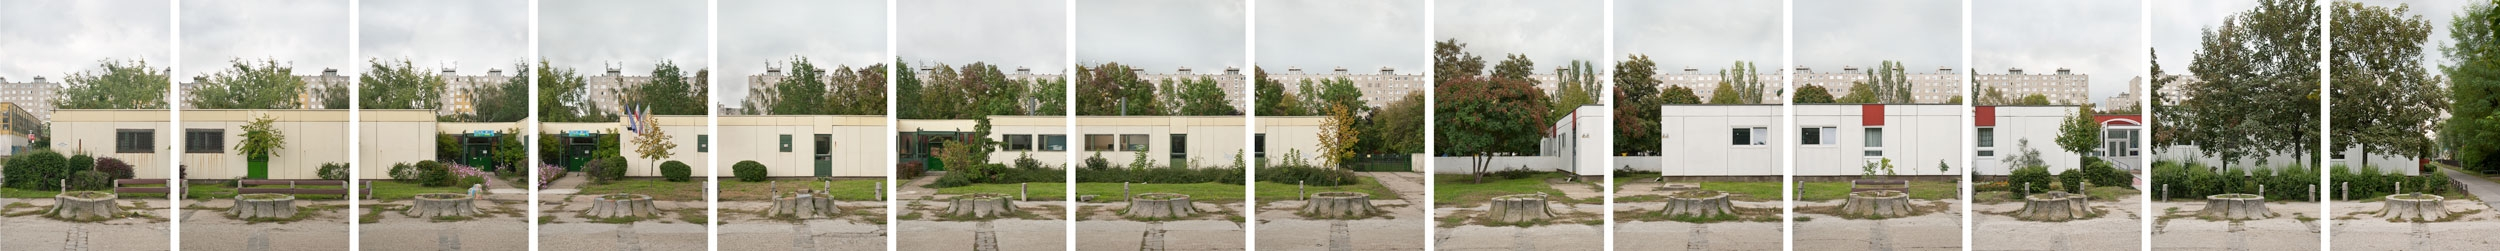 Carlos Azeredo Mesquita – The Radiant City, Havana Street Estate, Budapest – Cut Trees, 2010, a series of digital prints on matte baryt paper, mounted on Alucobond, total length 500 cm x 60 cm